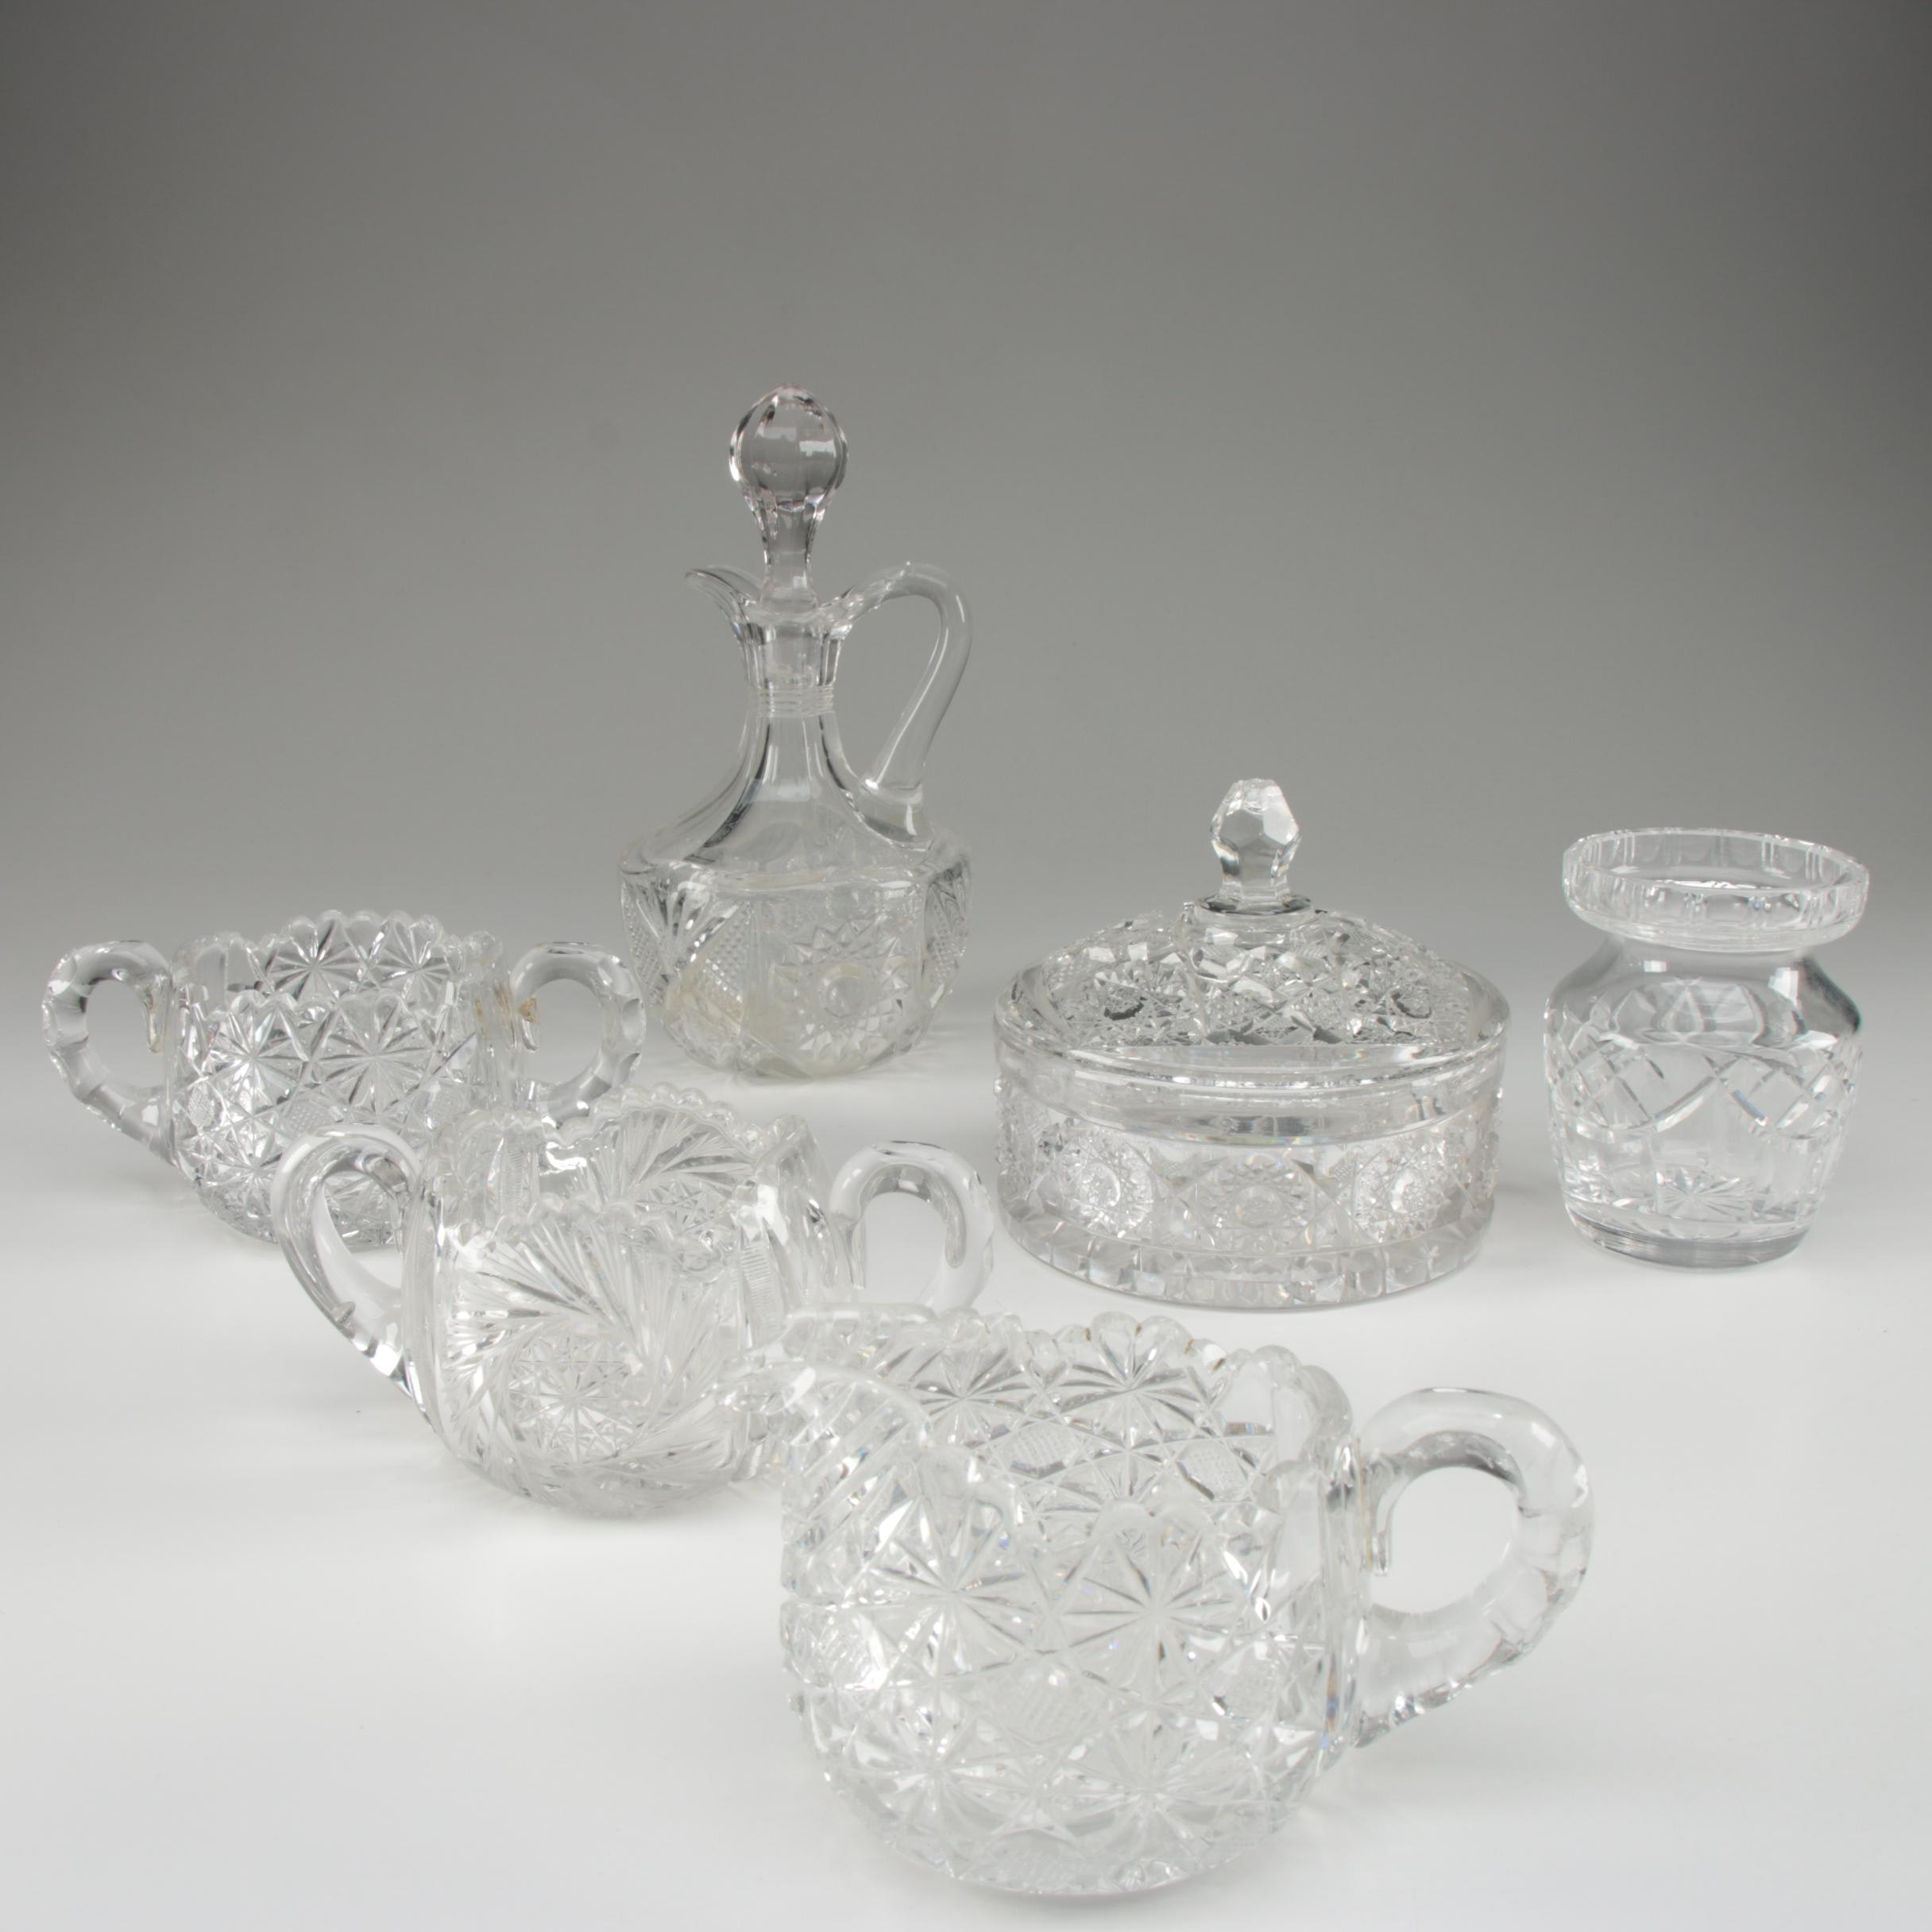 American Brilliant Period Cut Glass Tableware with Waterford Crystal Jam Pot